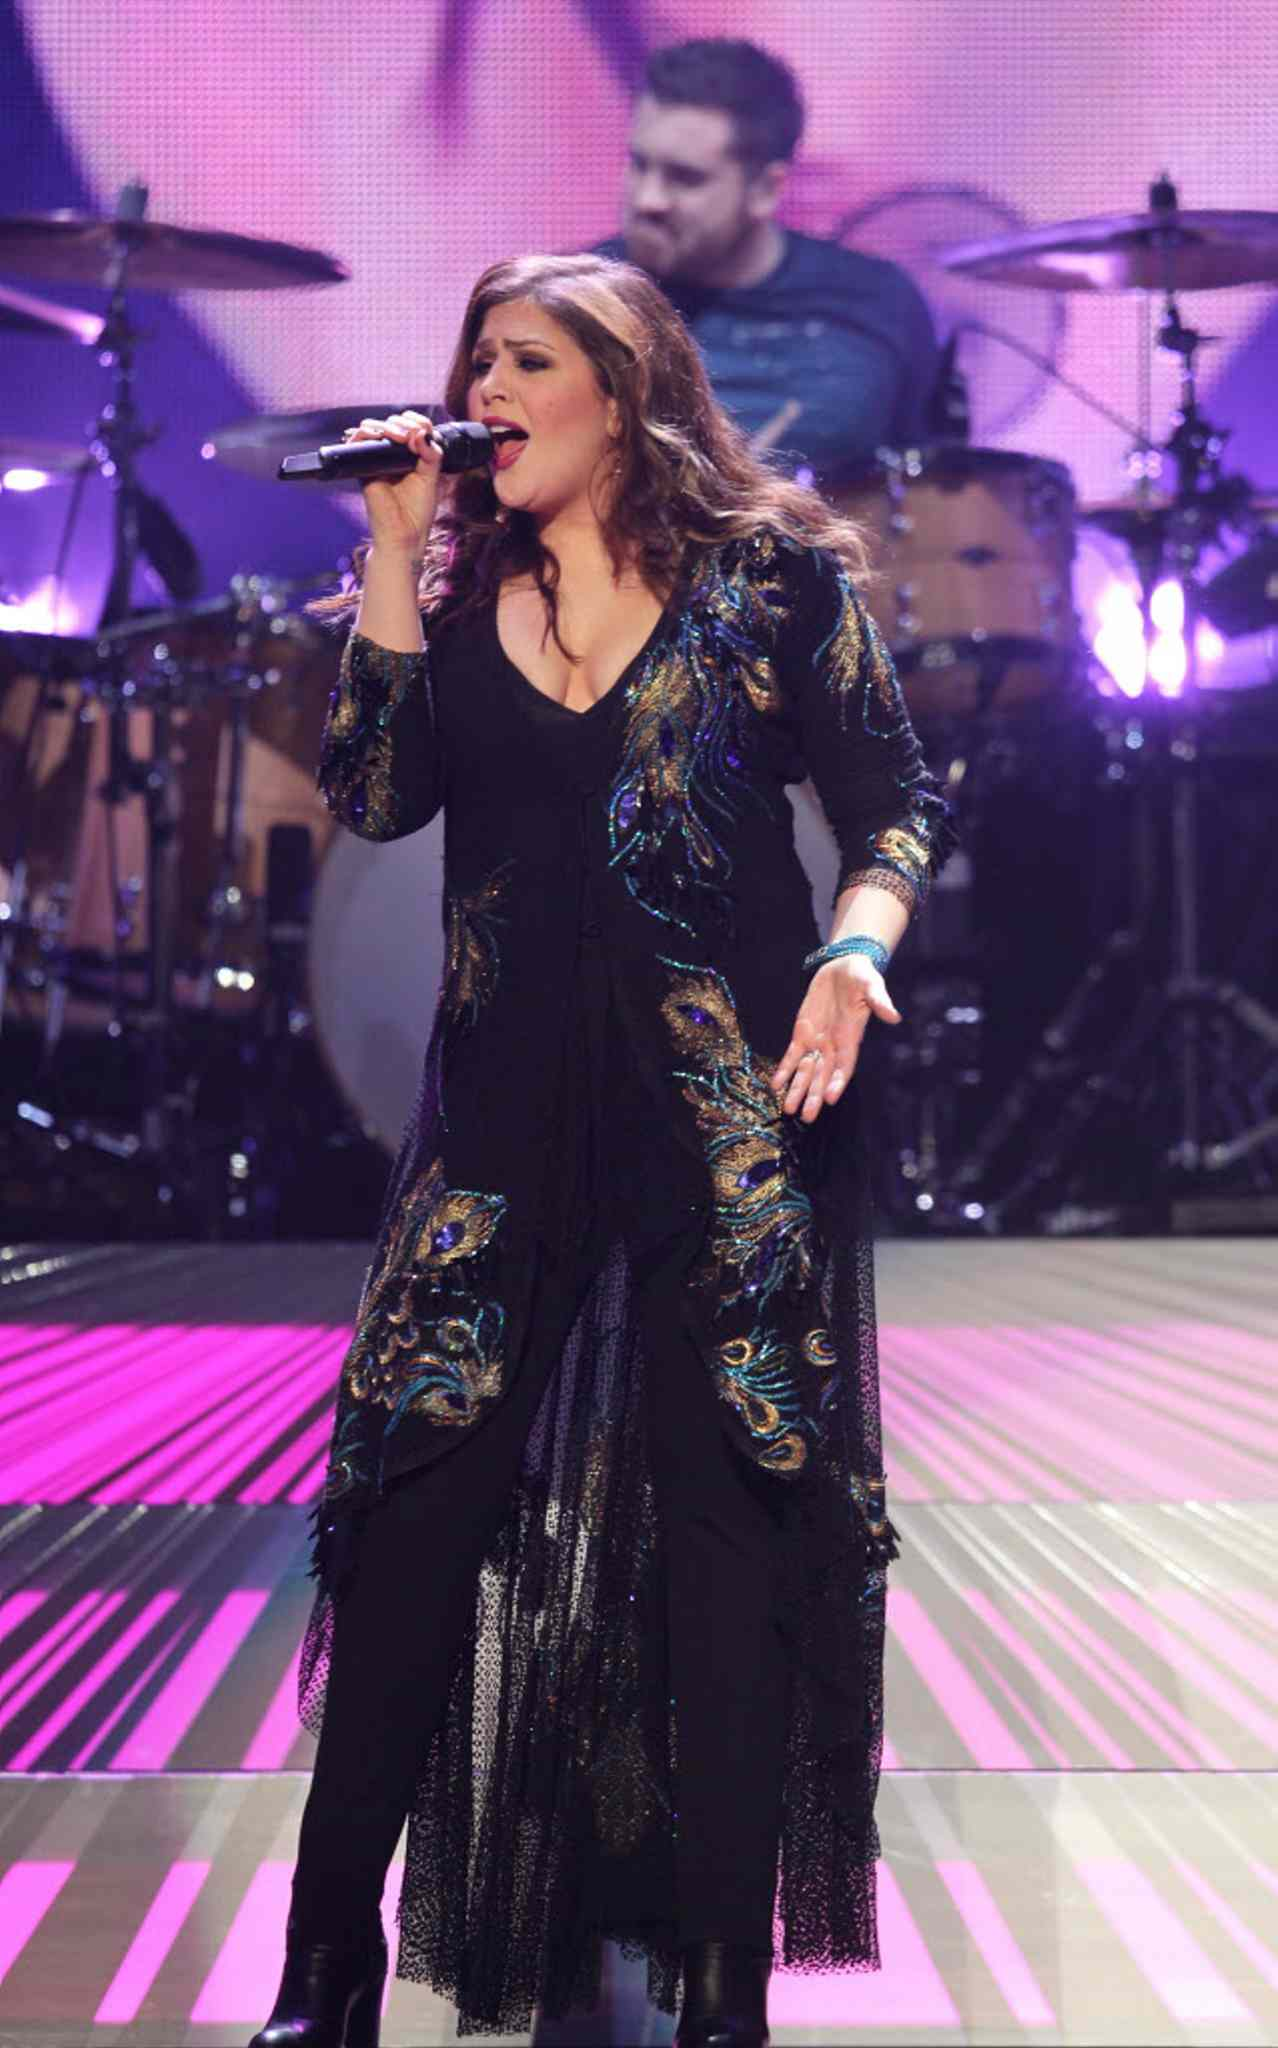 Lady Antebellum lead singer Hillary Scott sings along with her band.